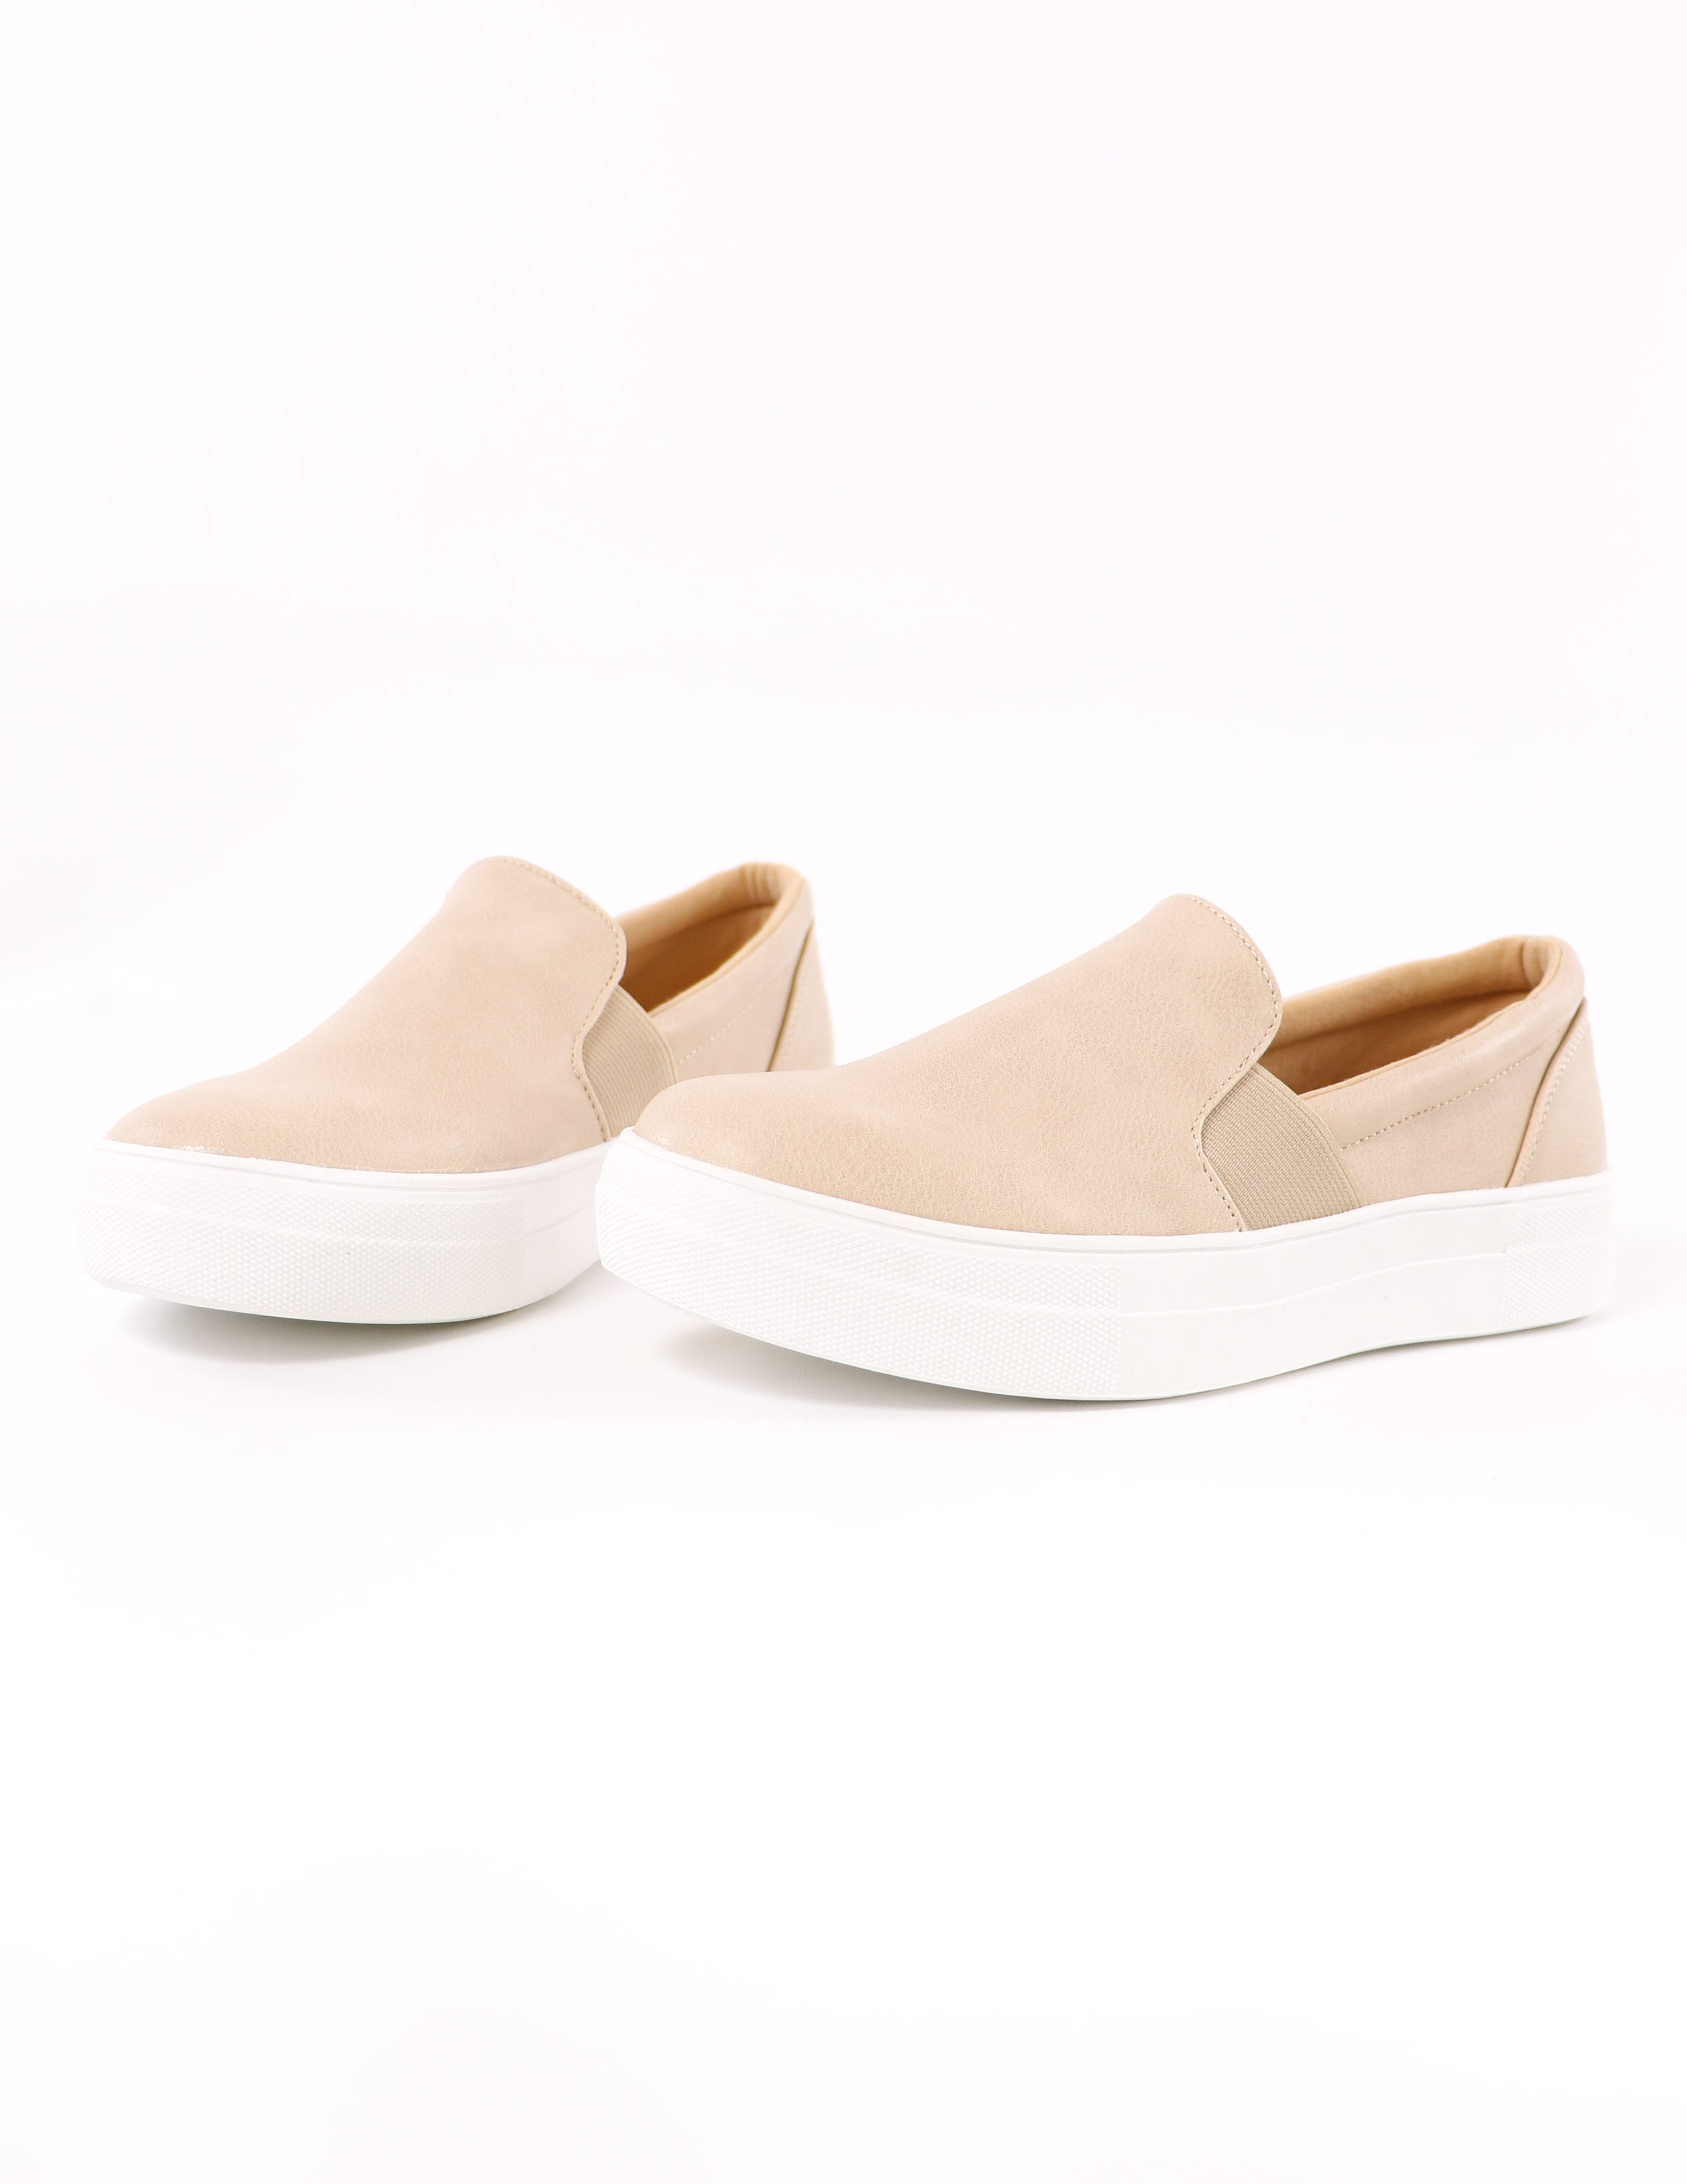 natural kickin' it sole-o sneakers on white background - elle bleu shoes